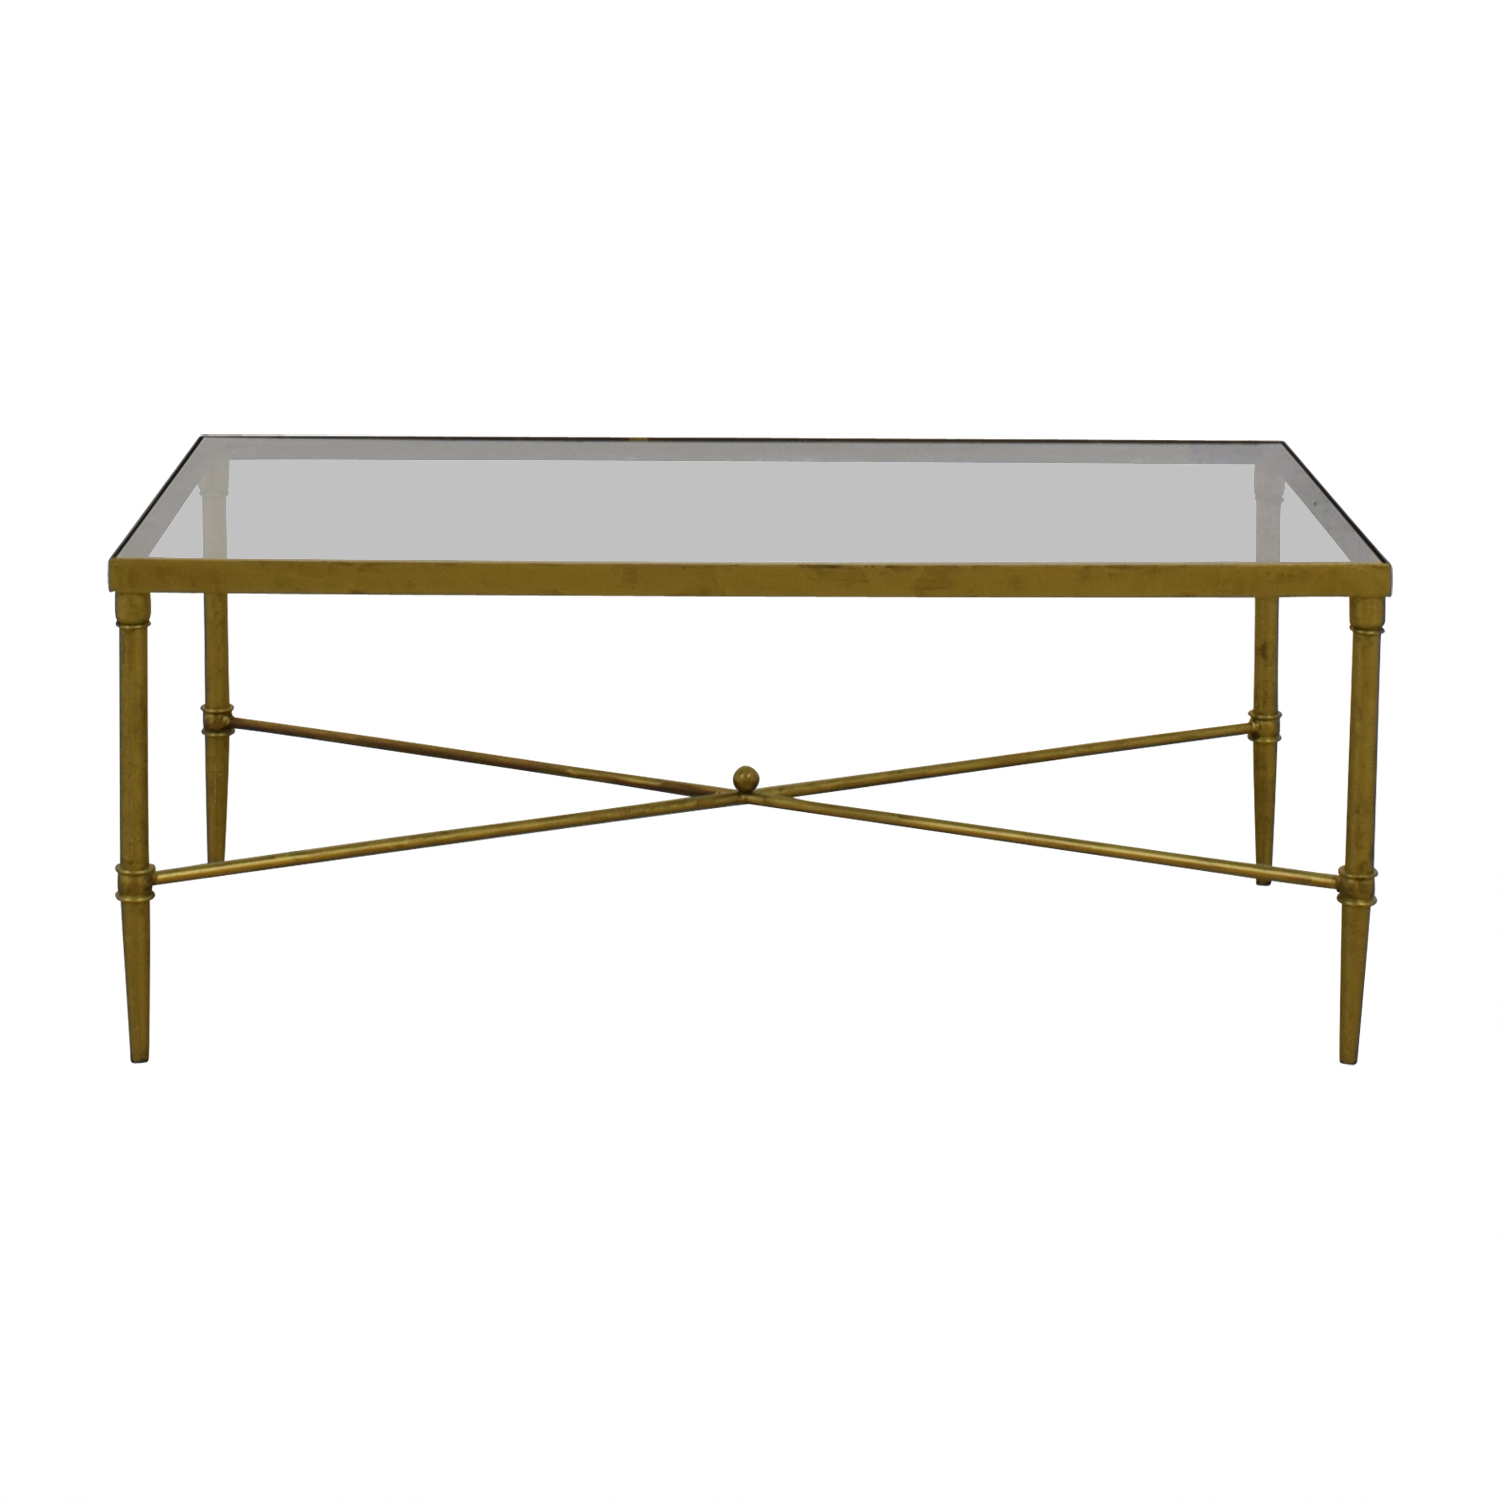 74 off madison park fadden rectangular glass and gold coffee table tables